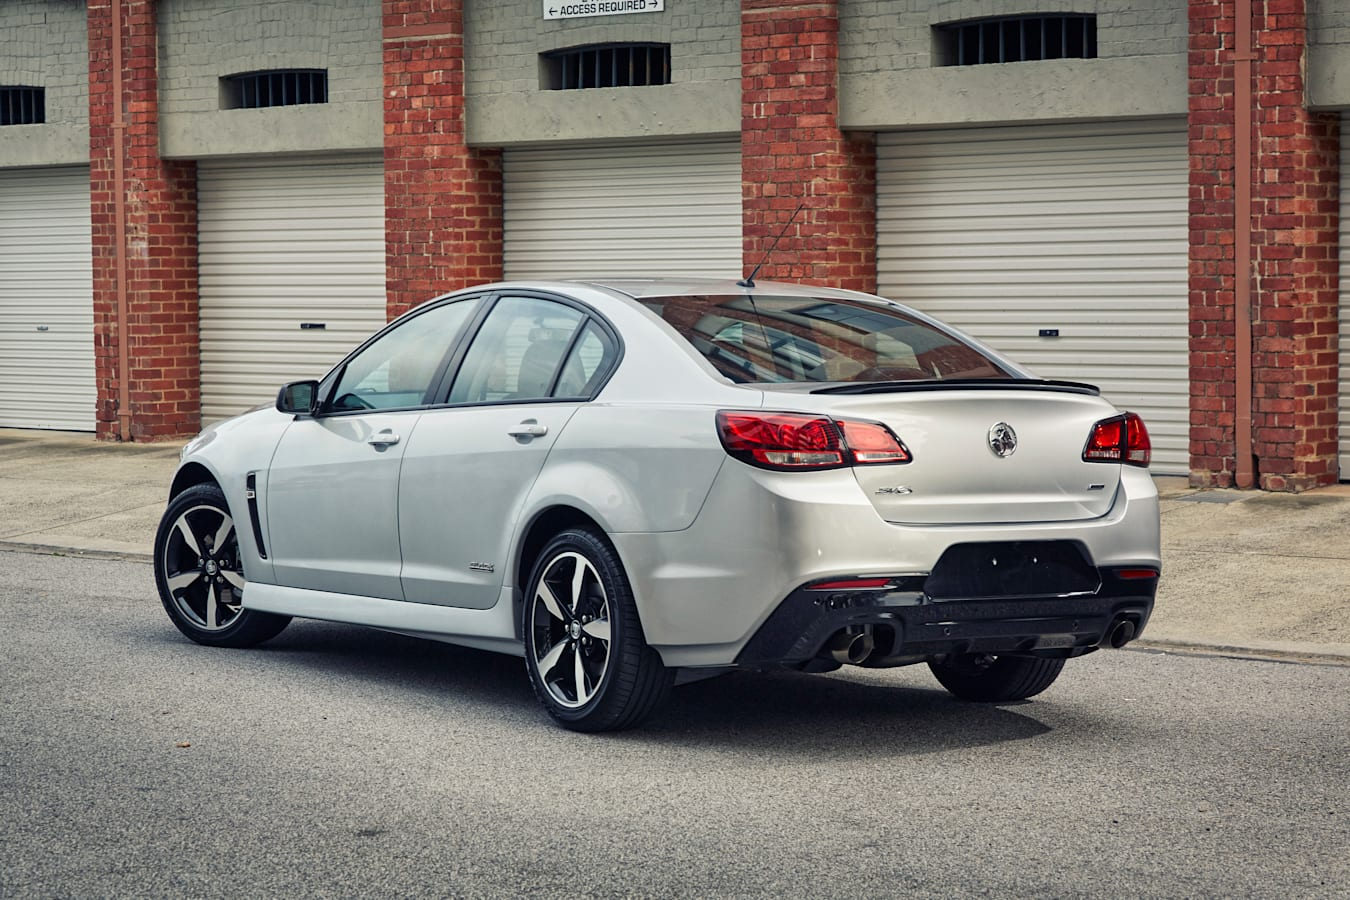 Holden Commodore Black Edition rear side